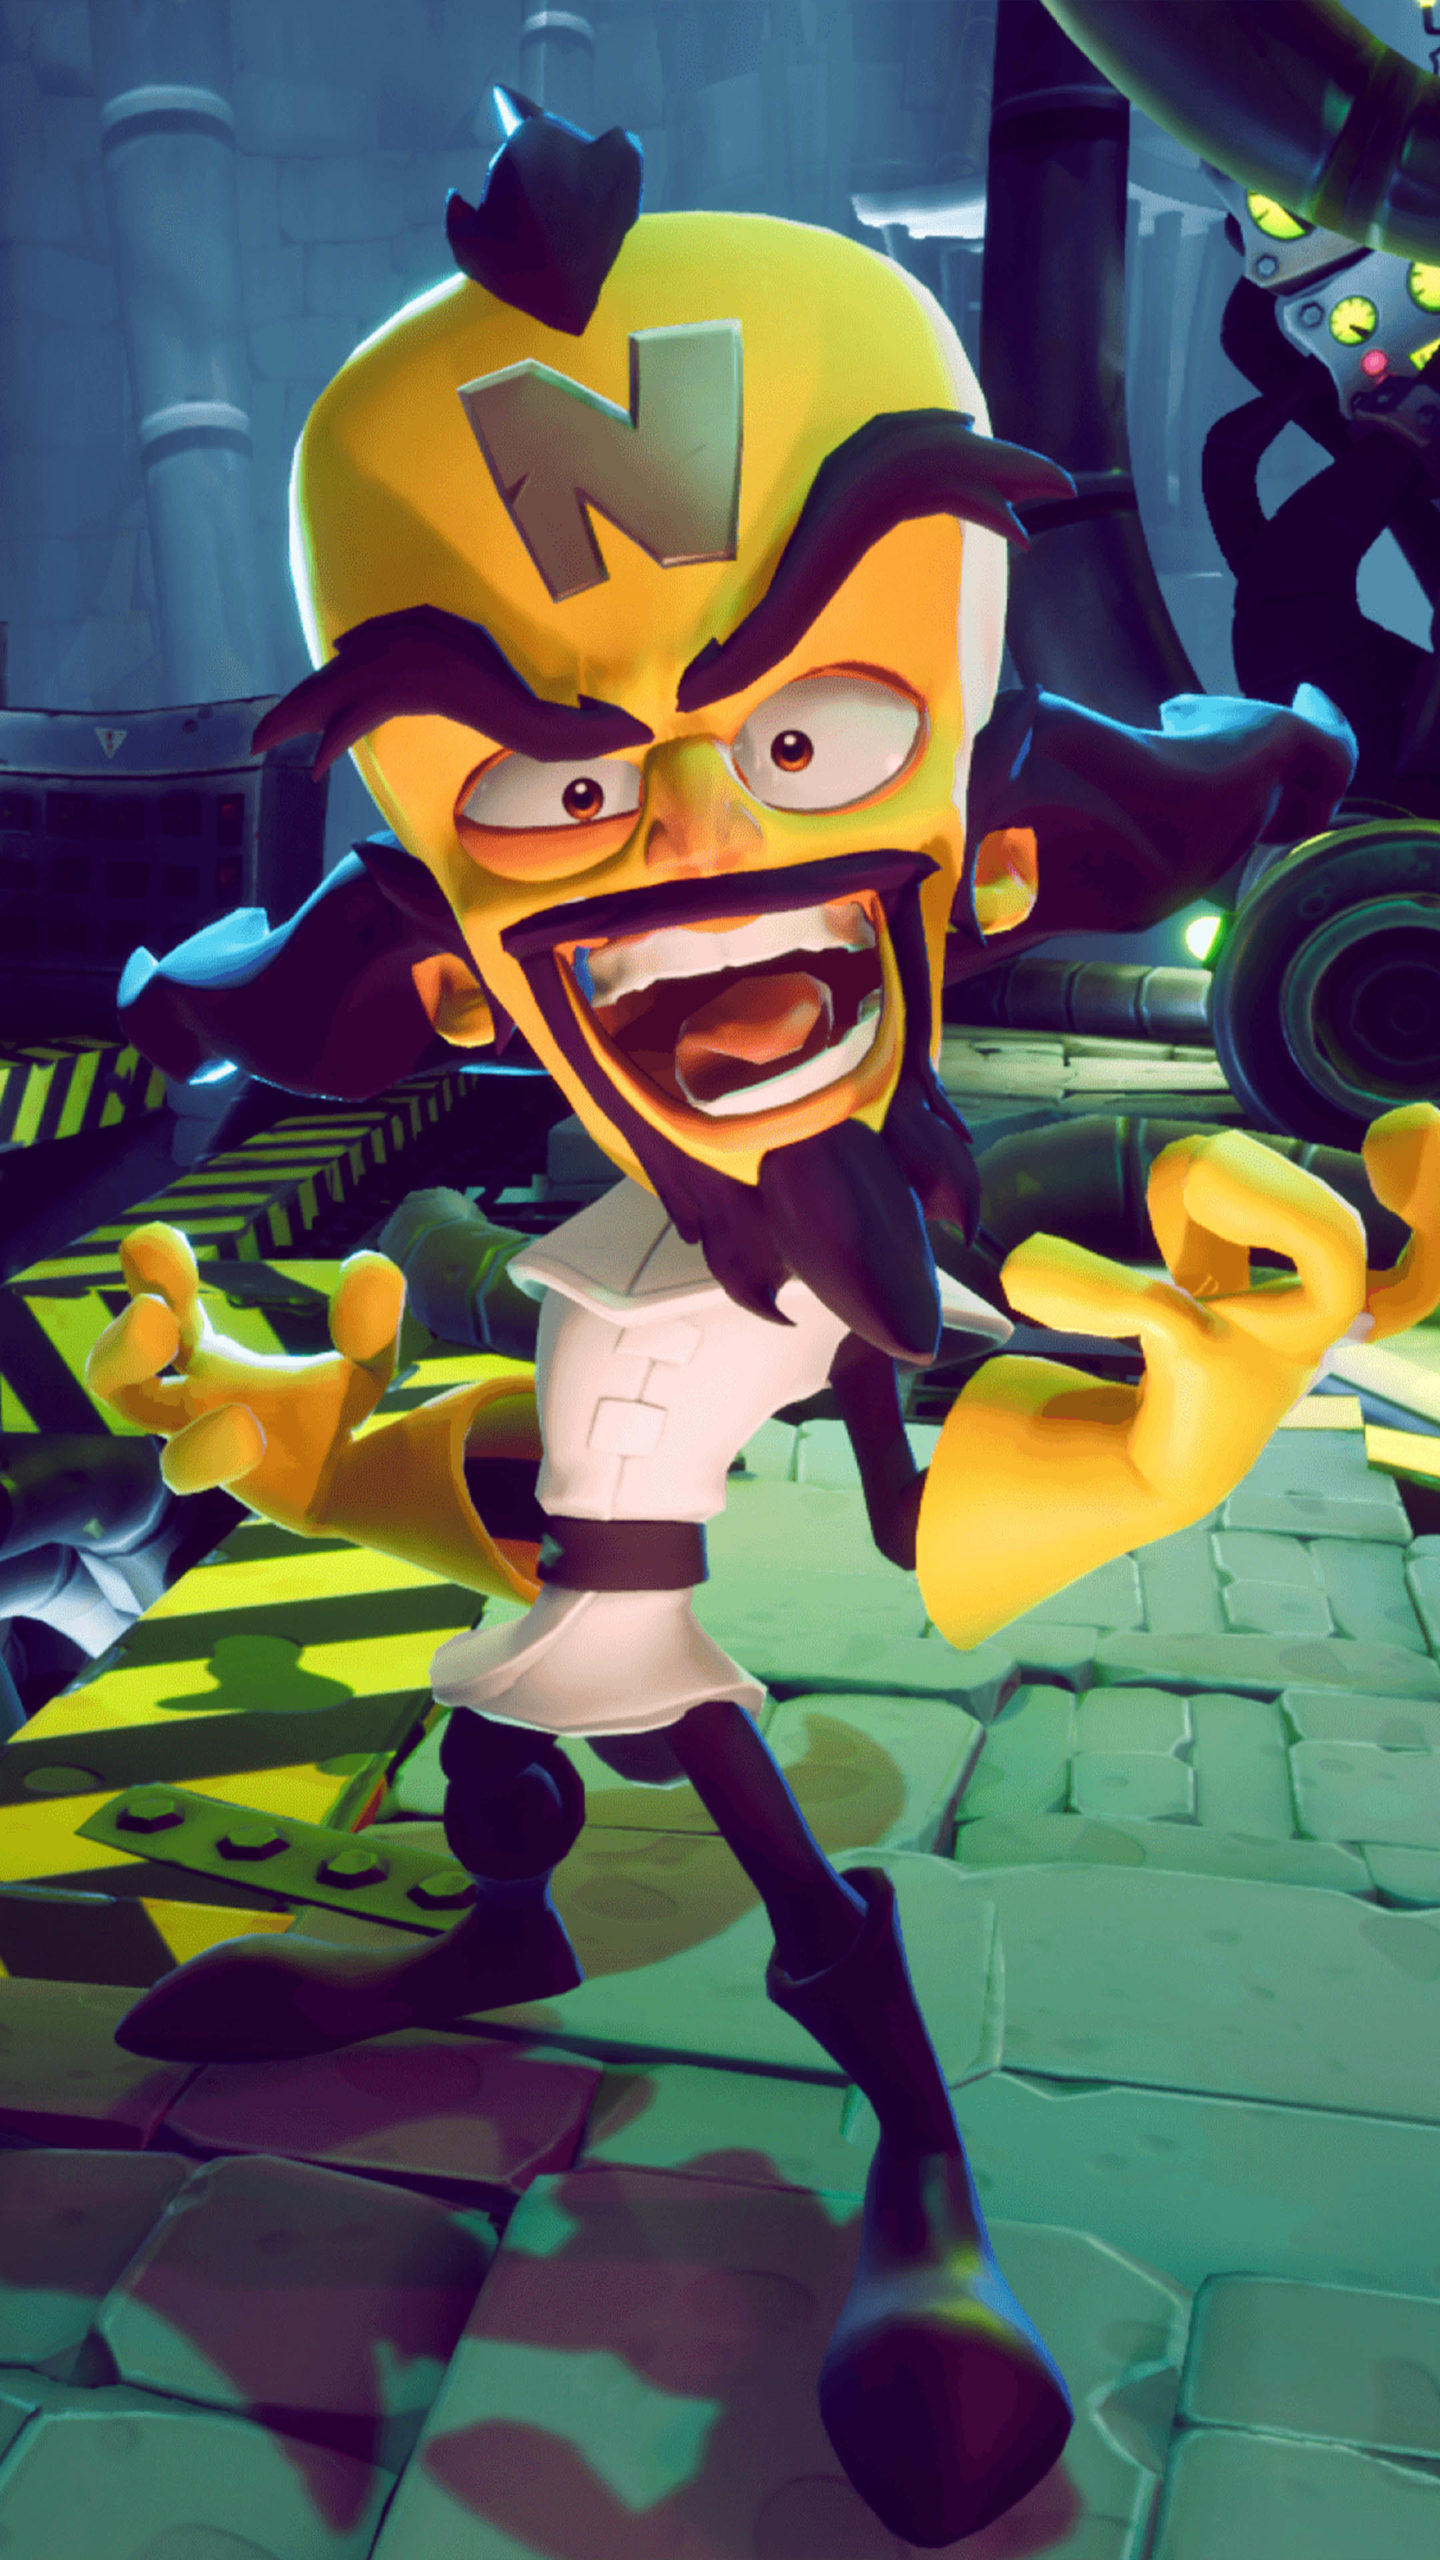 Doctor Neo Cortex In Crash Bandicoot 4 It's About Time 4K